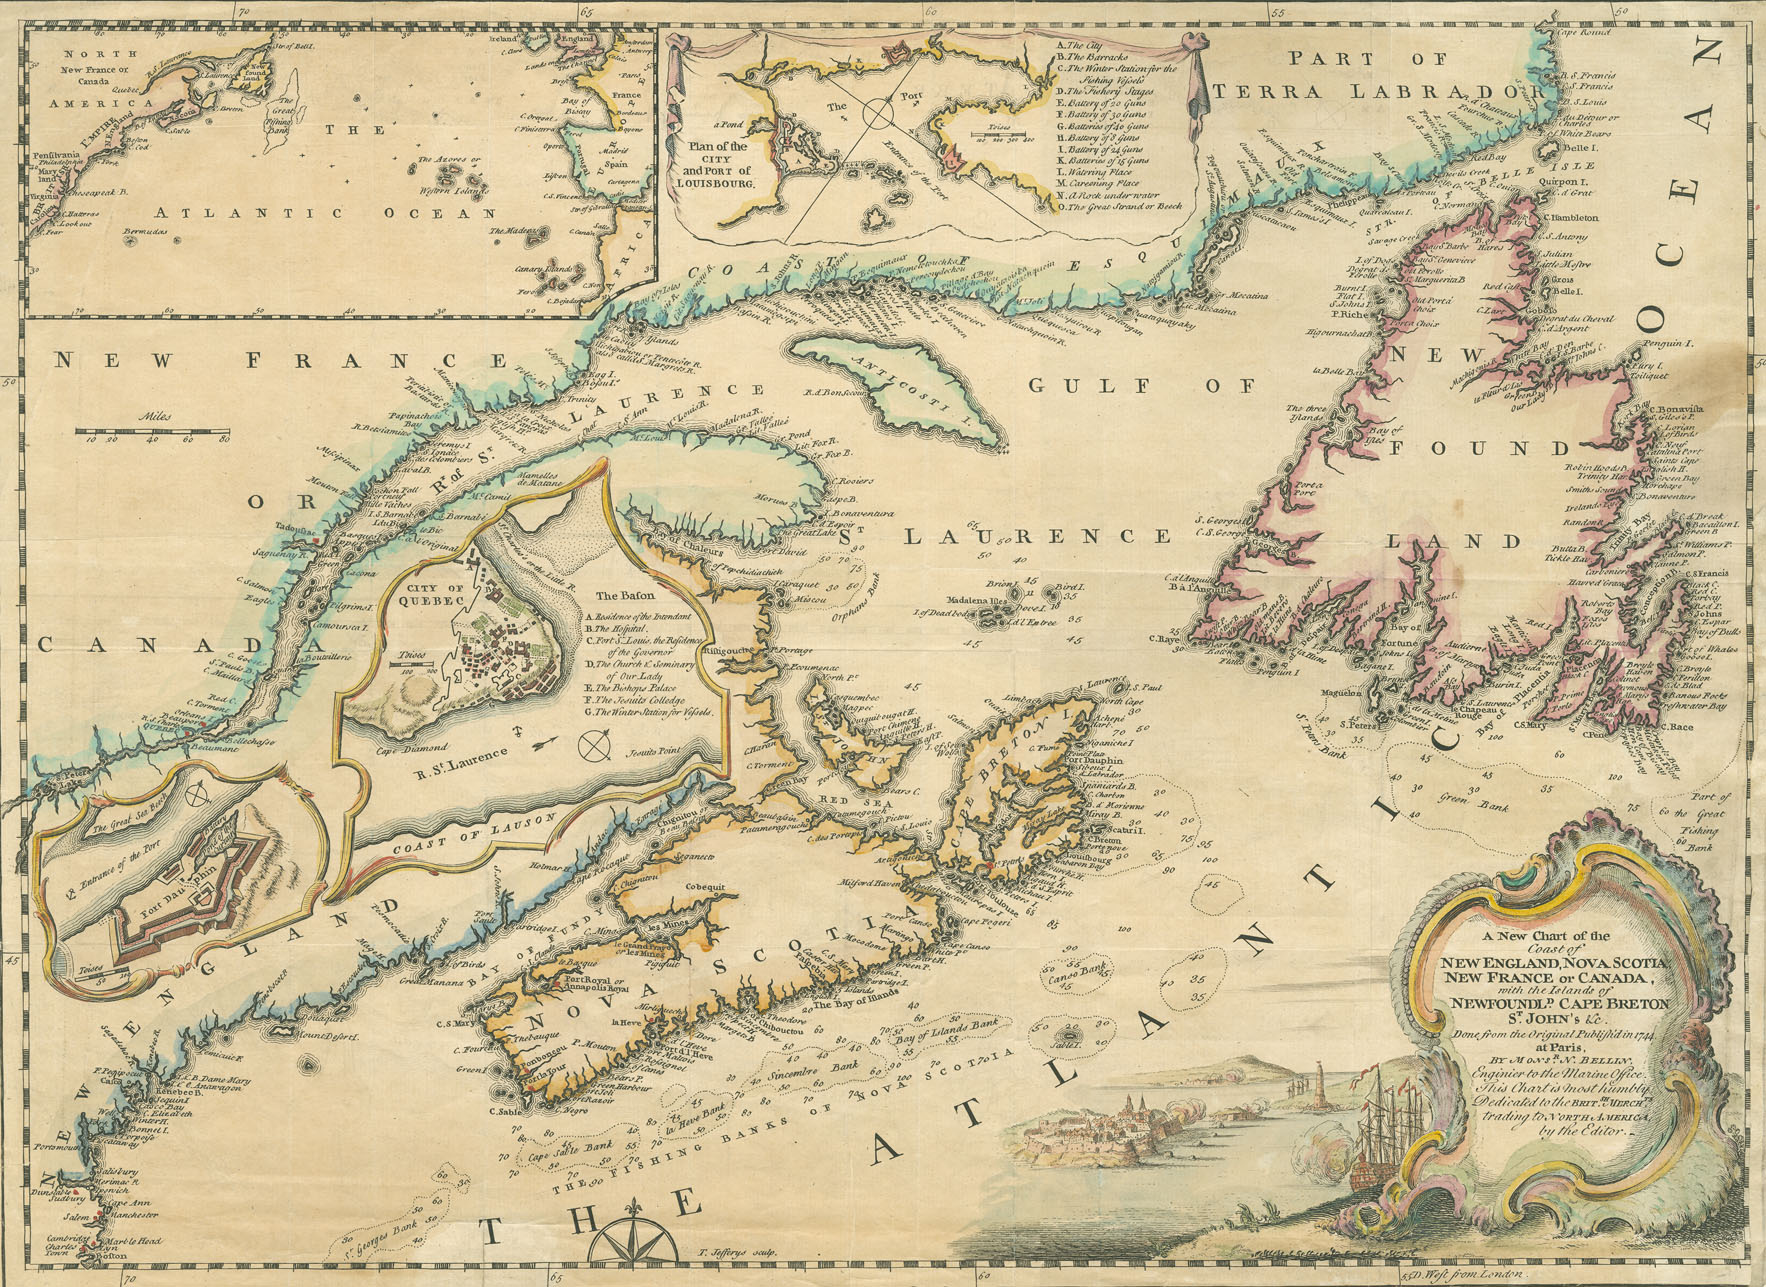 Old New England Map.Nova Scotia Archives Historical Maps Of Nova Scotia